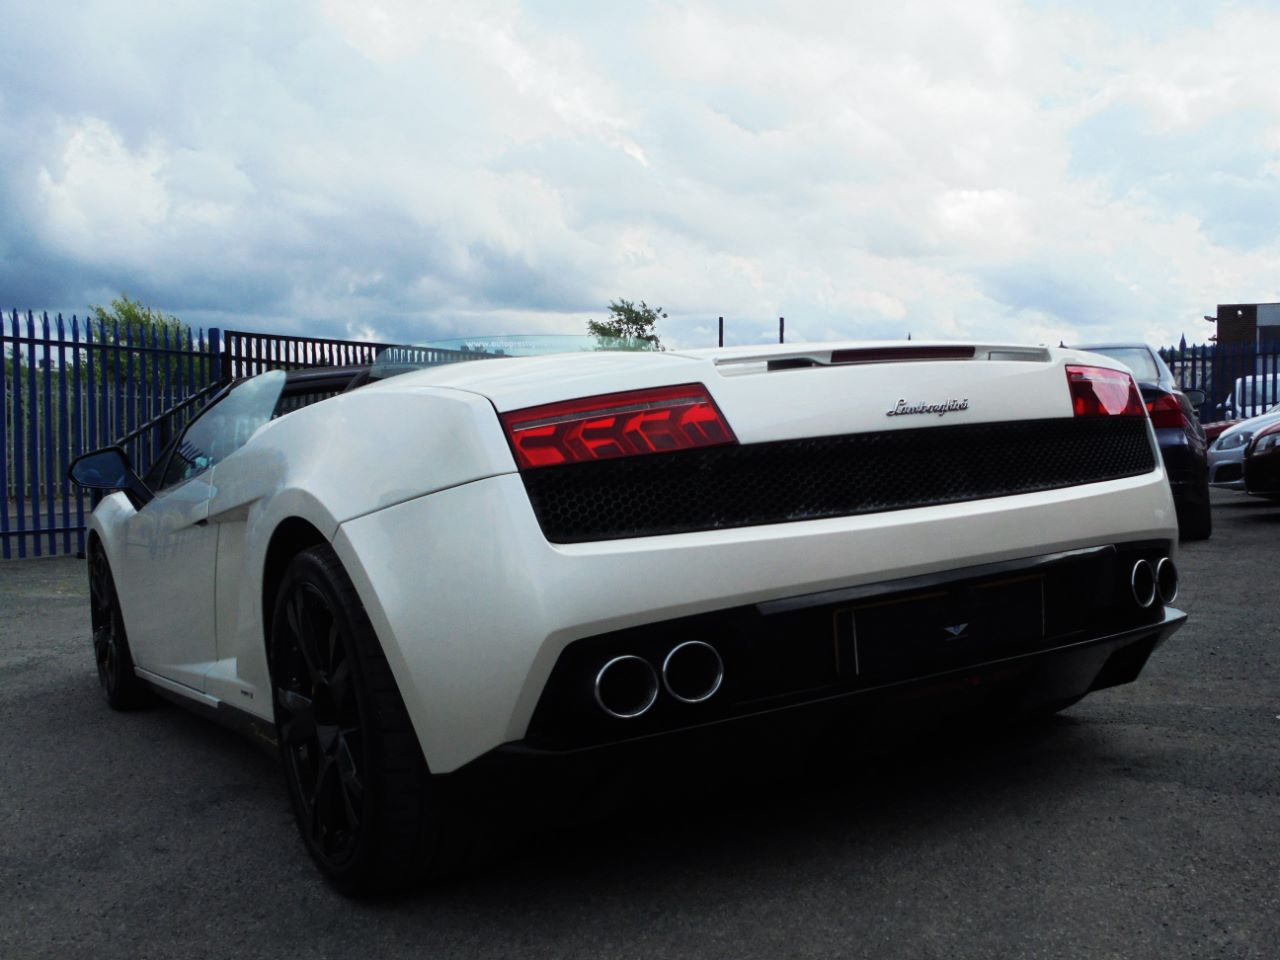 Lhd Cars For Sale In Manchester Uk